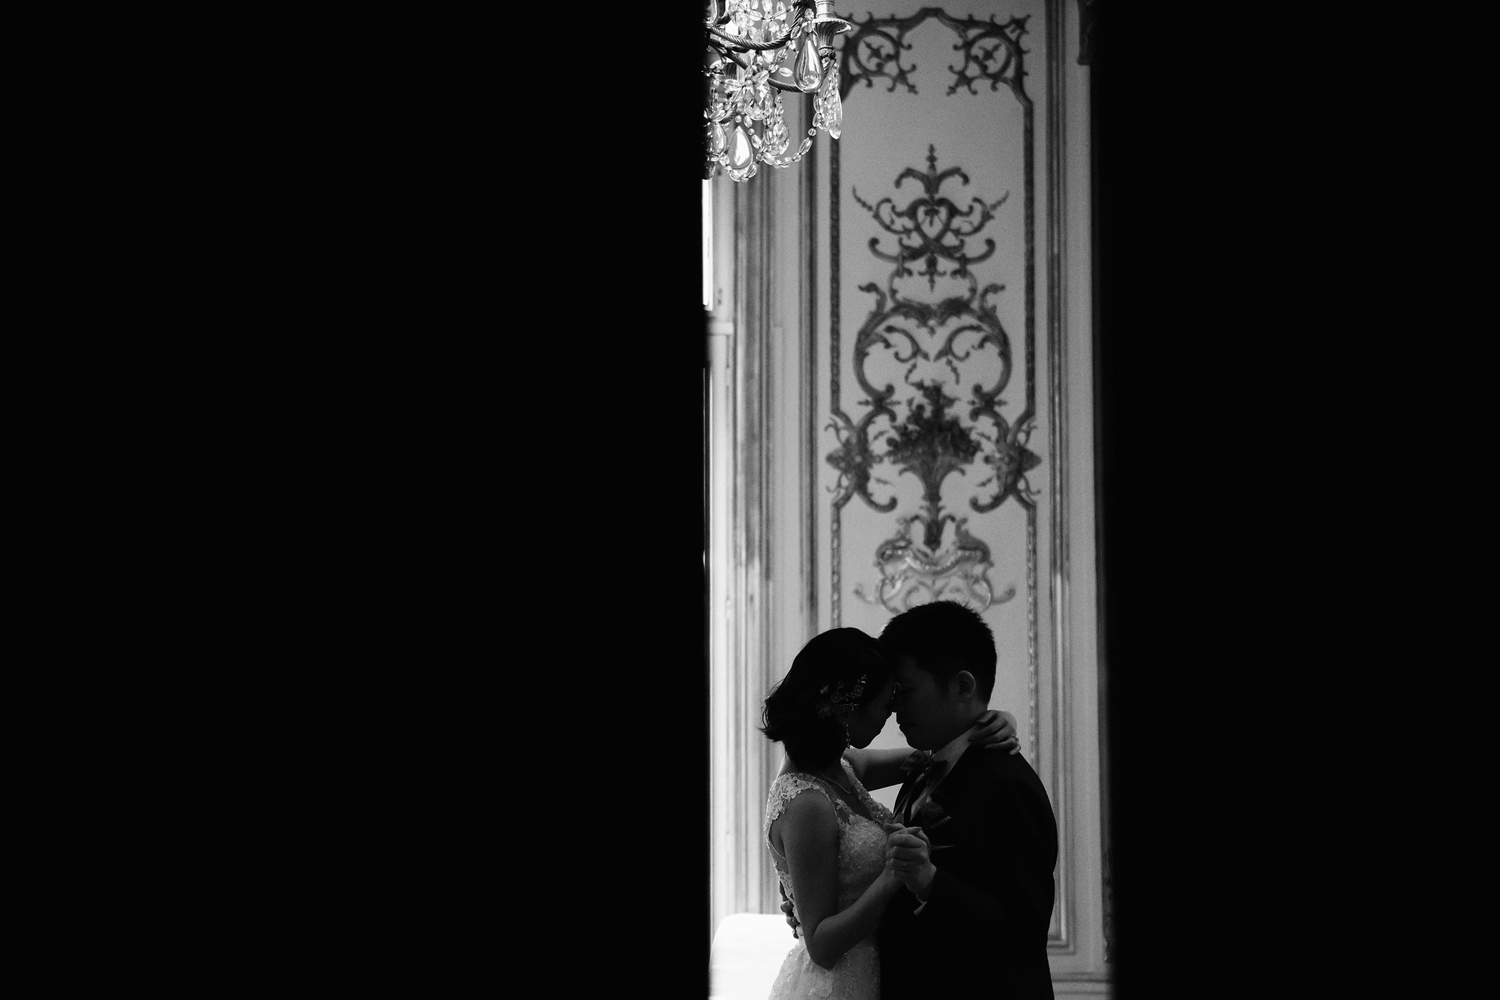 332-katie-mitchell-paris-wedding-elopement-photographer-france.jpg